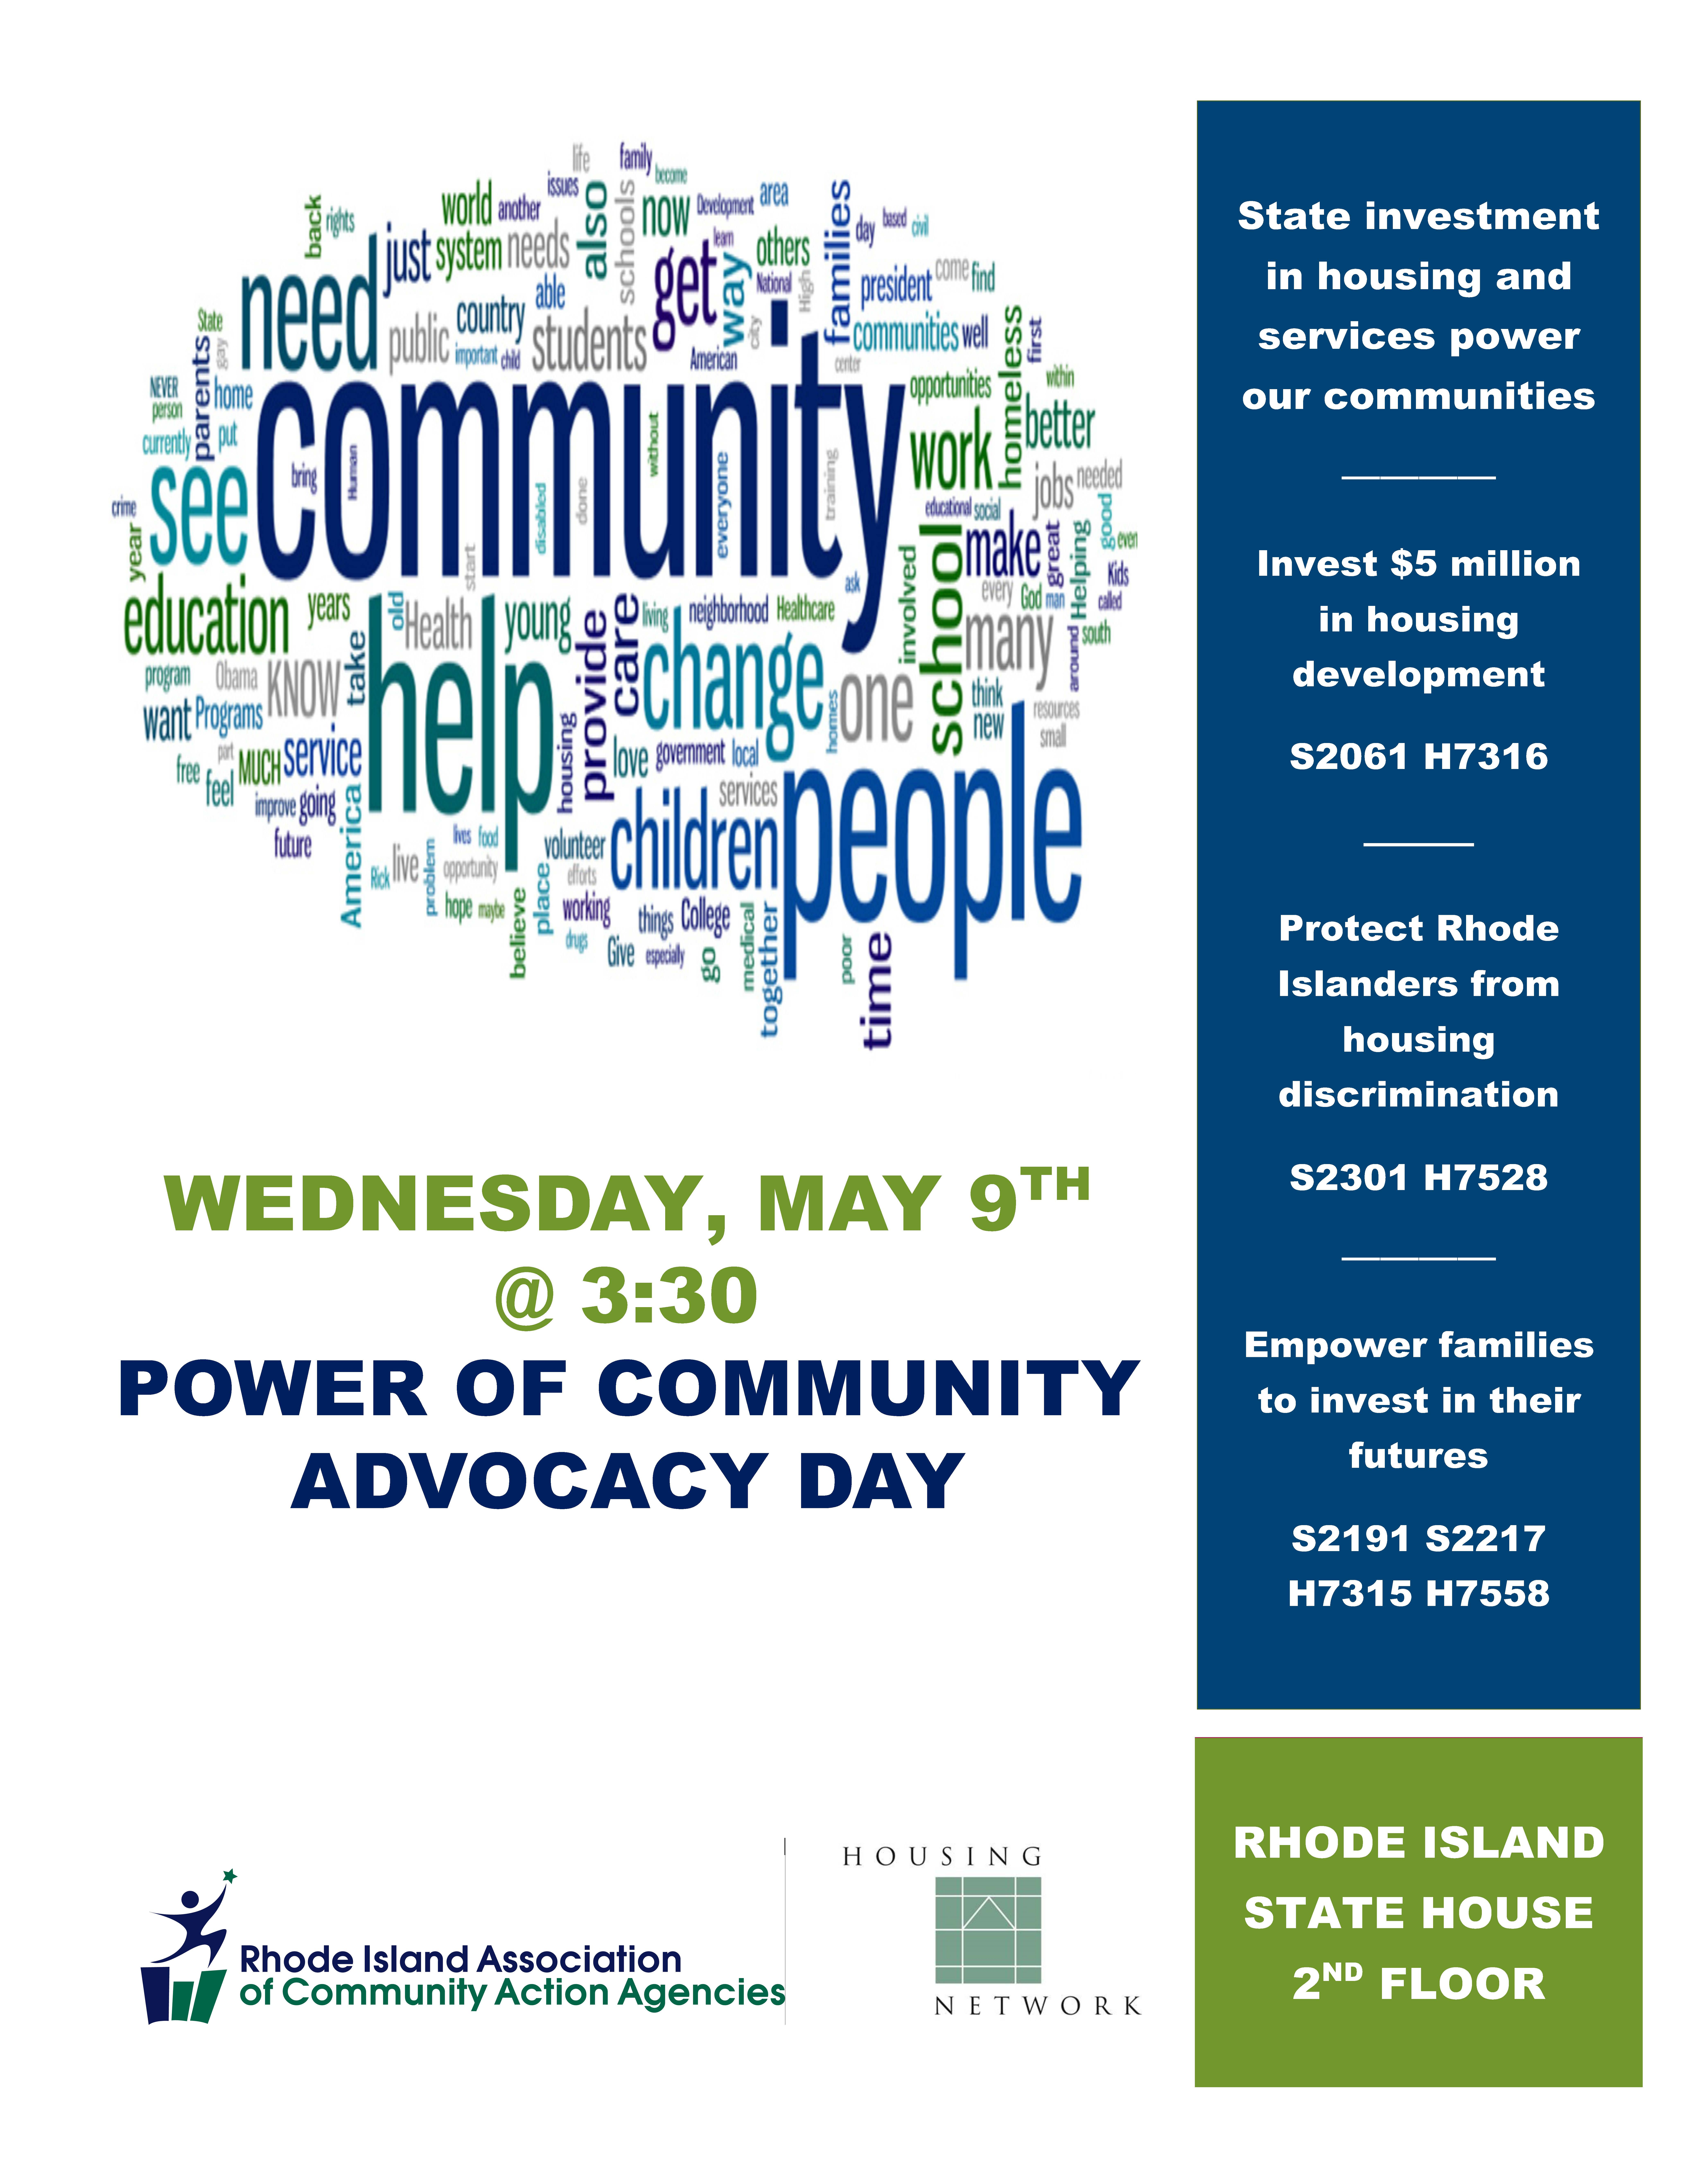 RICAA and HNRI: Power of Community Advocacy Day 2018